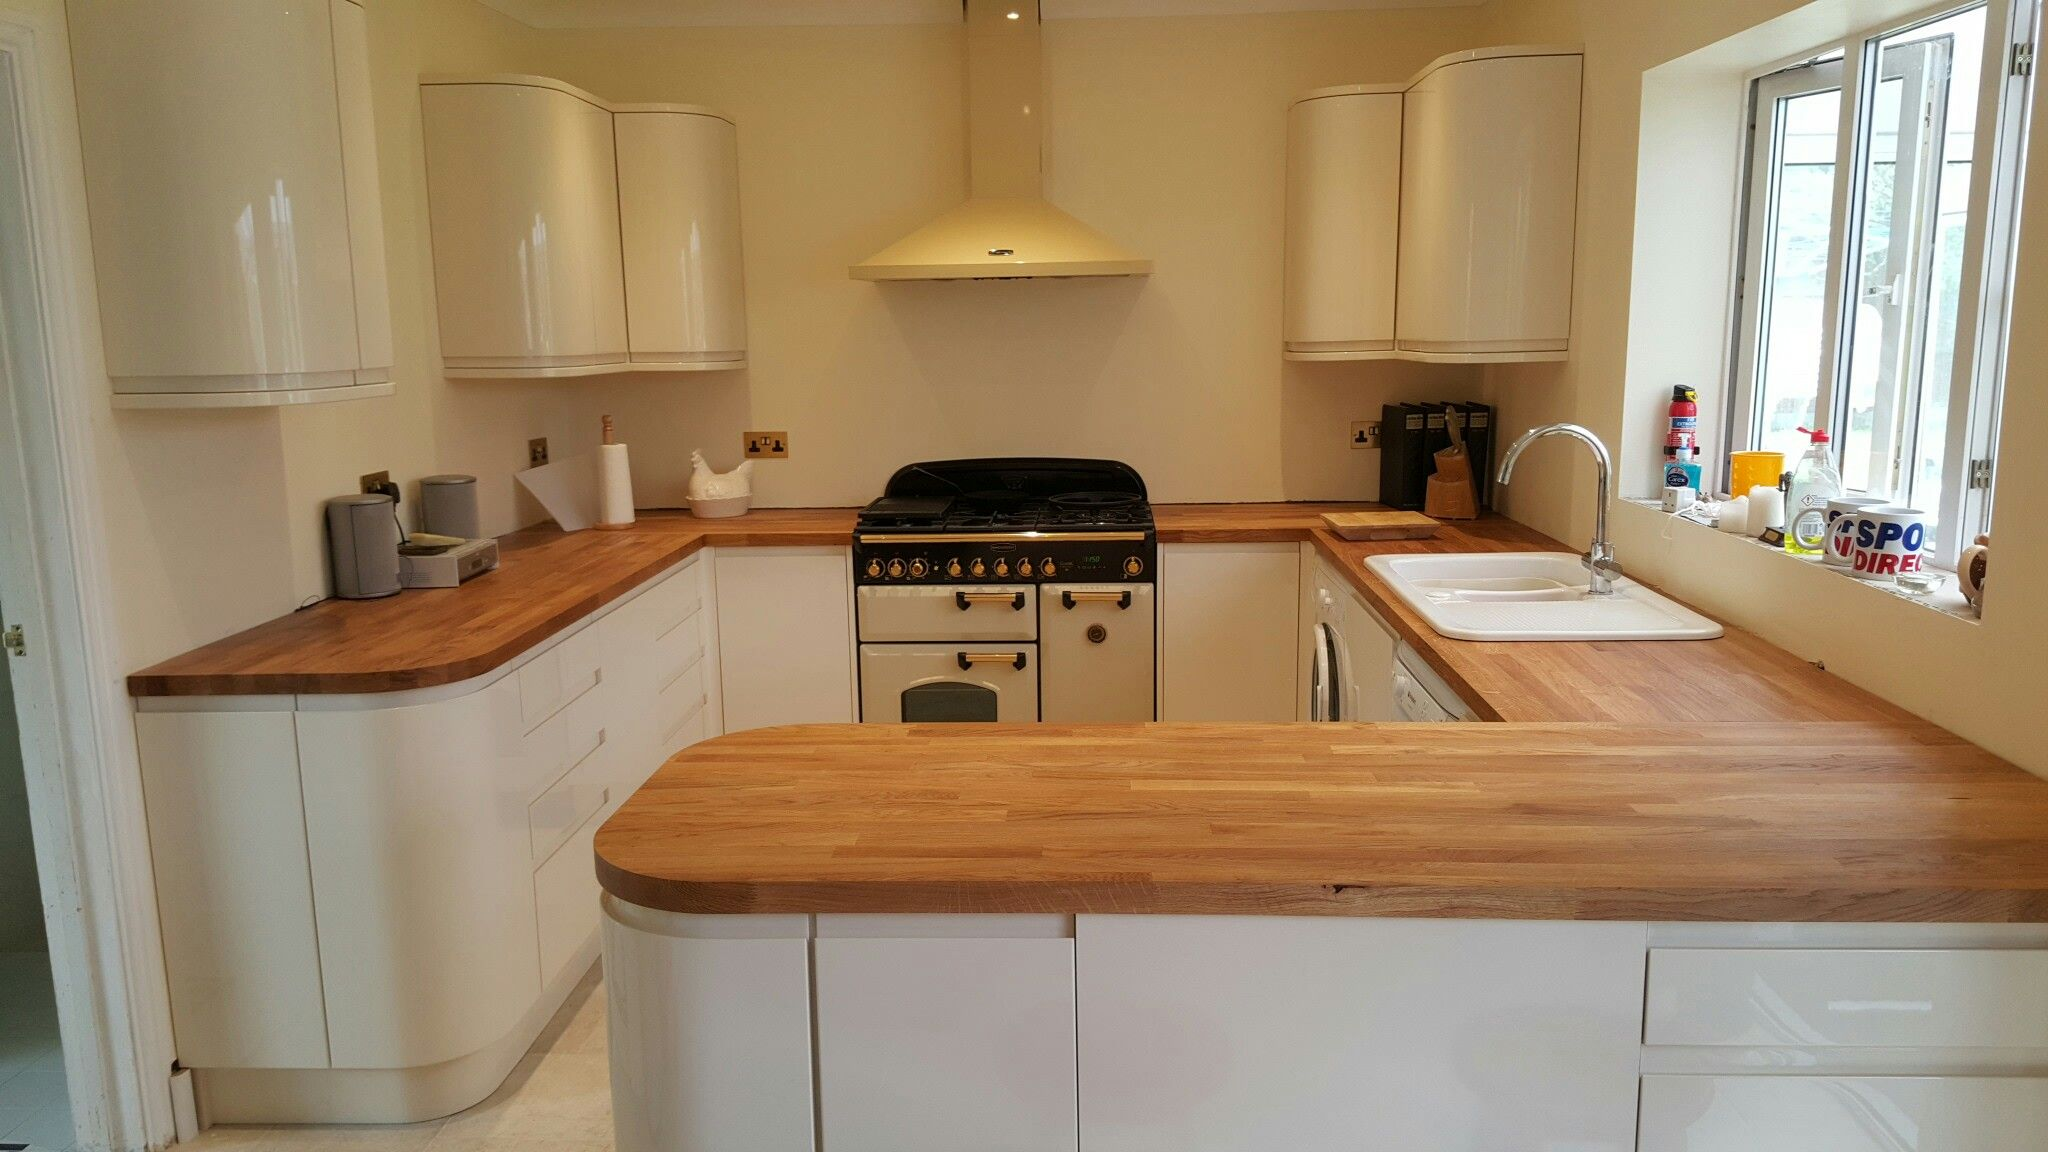 Wickes Kitchen Flooring Wickes Sofia Kitchen With Solid Wood Worktop Designed By Ivan